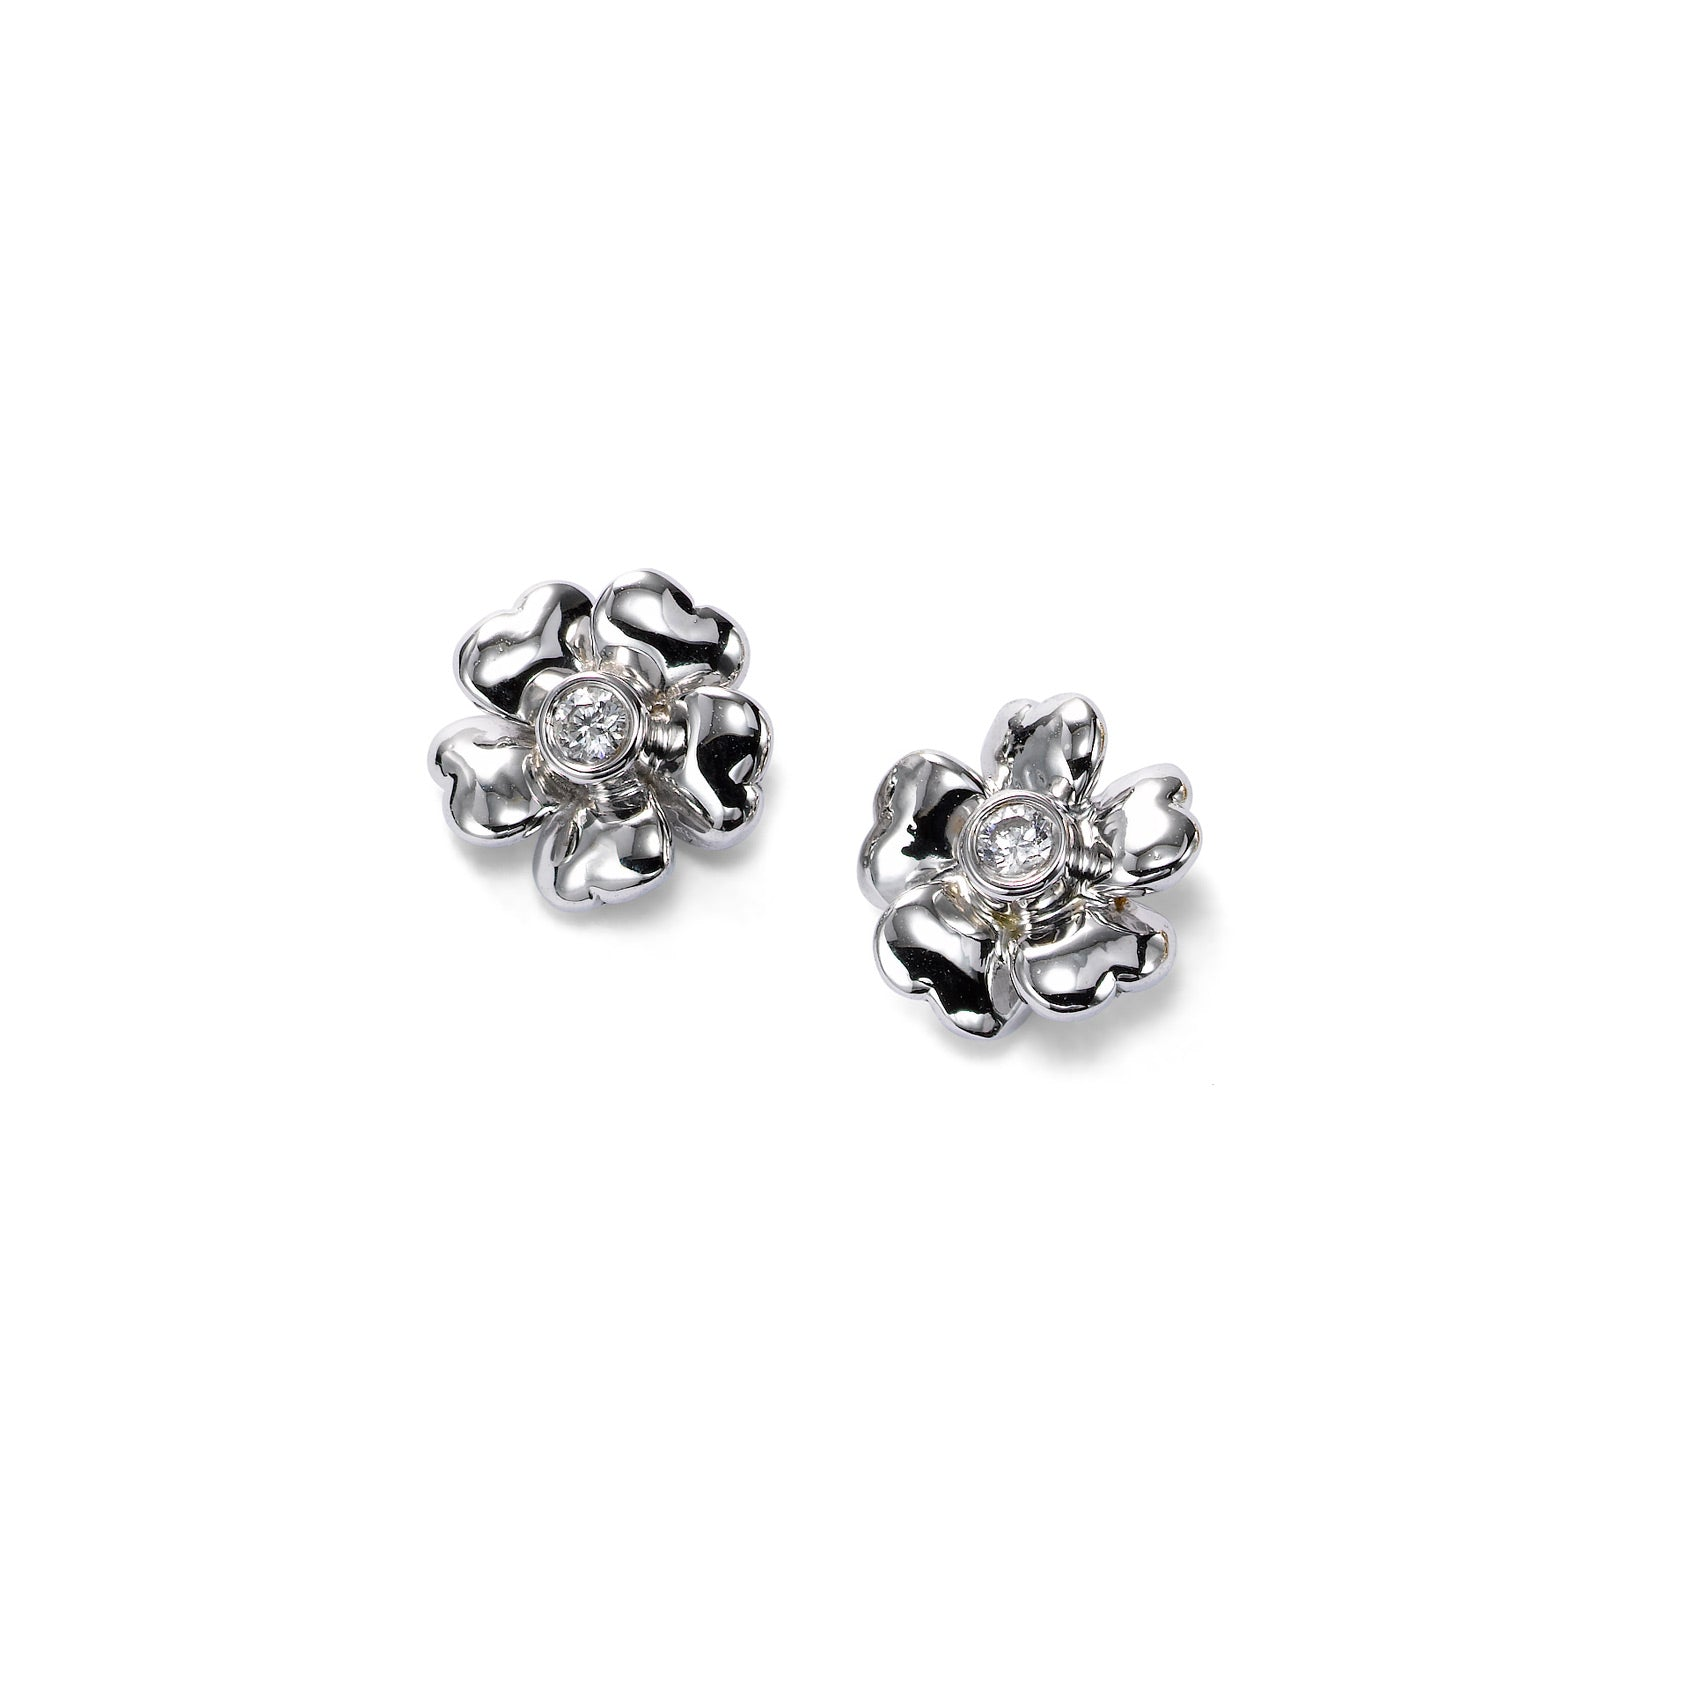 Small Flower Earrings with Diamond Center, 14K White Gold